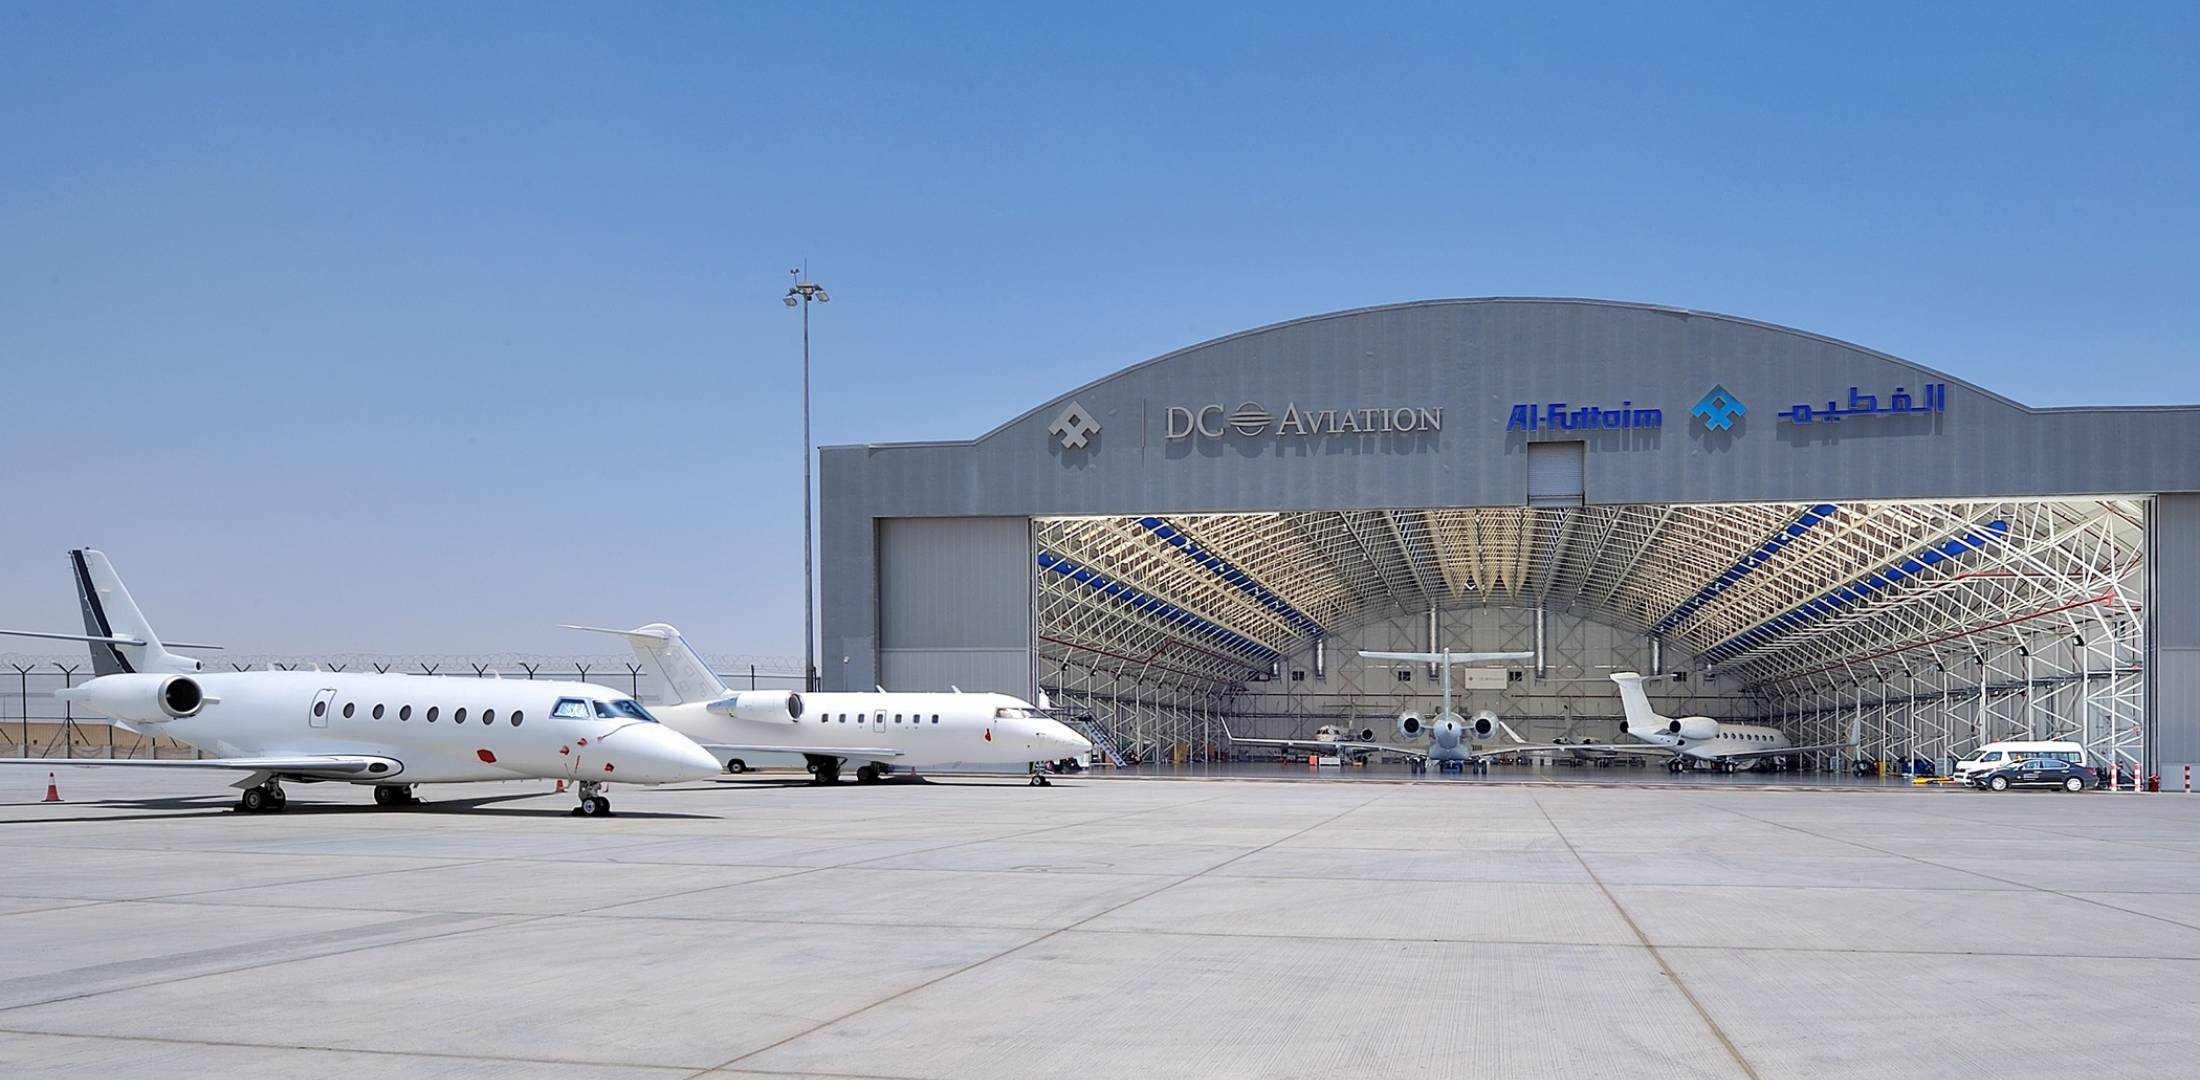 New DCAF Hangar Expected To Be Complete in Early 2017   Business     A joint venture between DC Aviation and local business conglomerate Al  Futtaim  DCAF is well